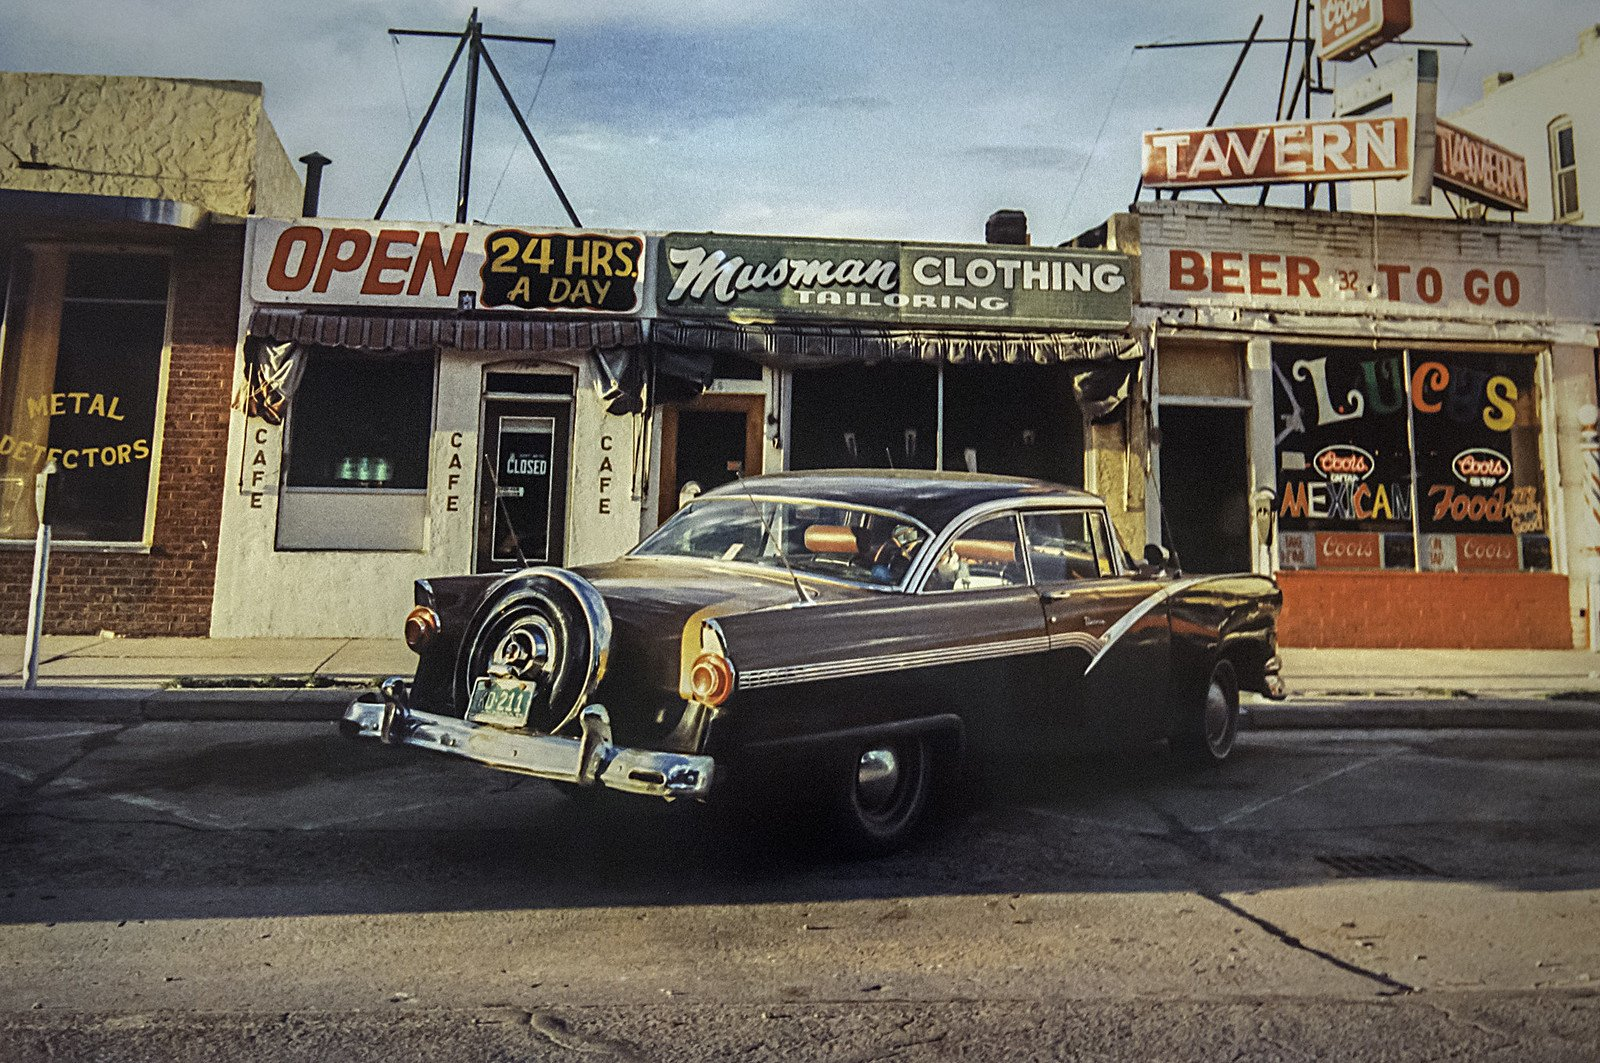 Street Photography From Los Alamos 1965- 1974 by William Eggleston